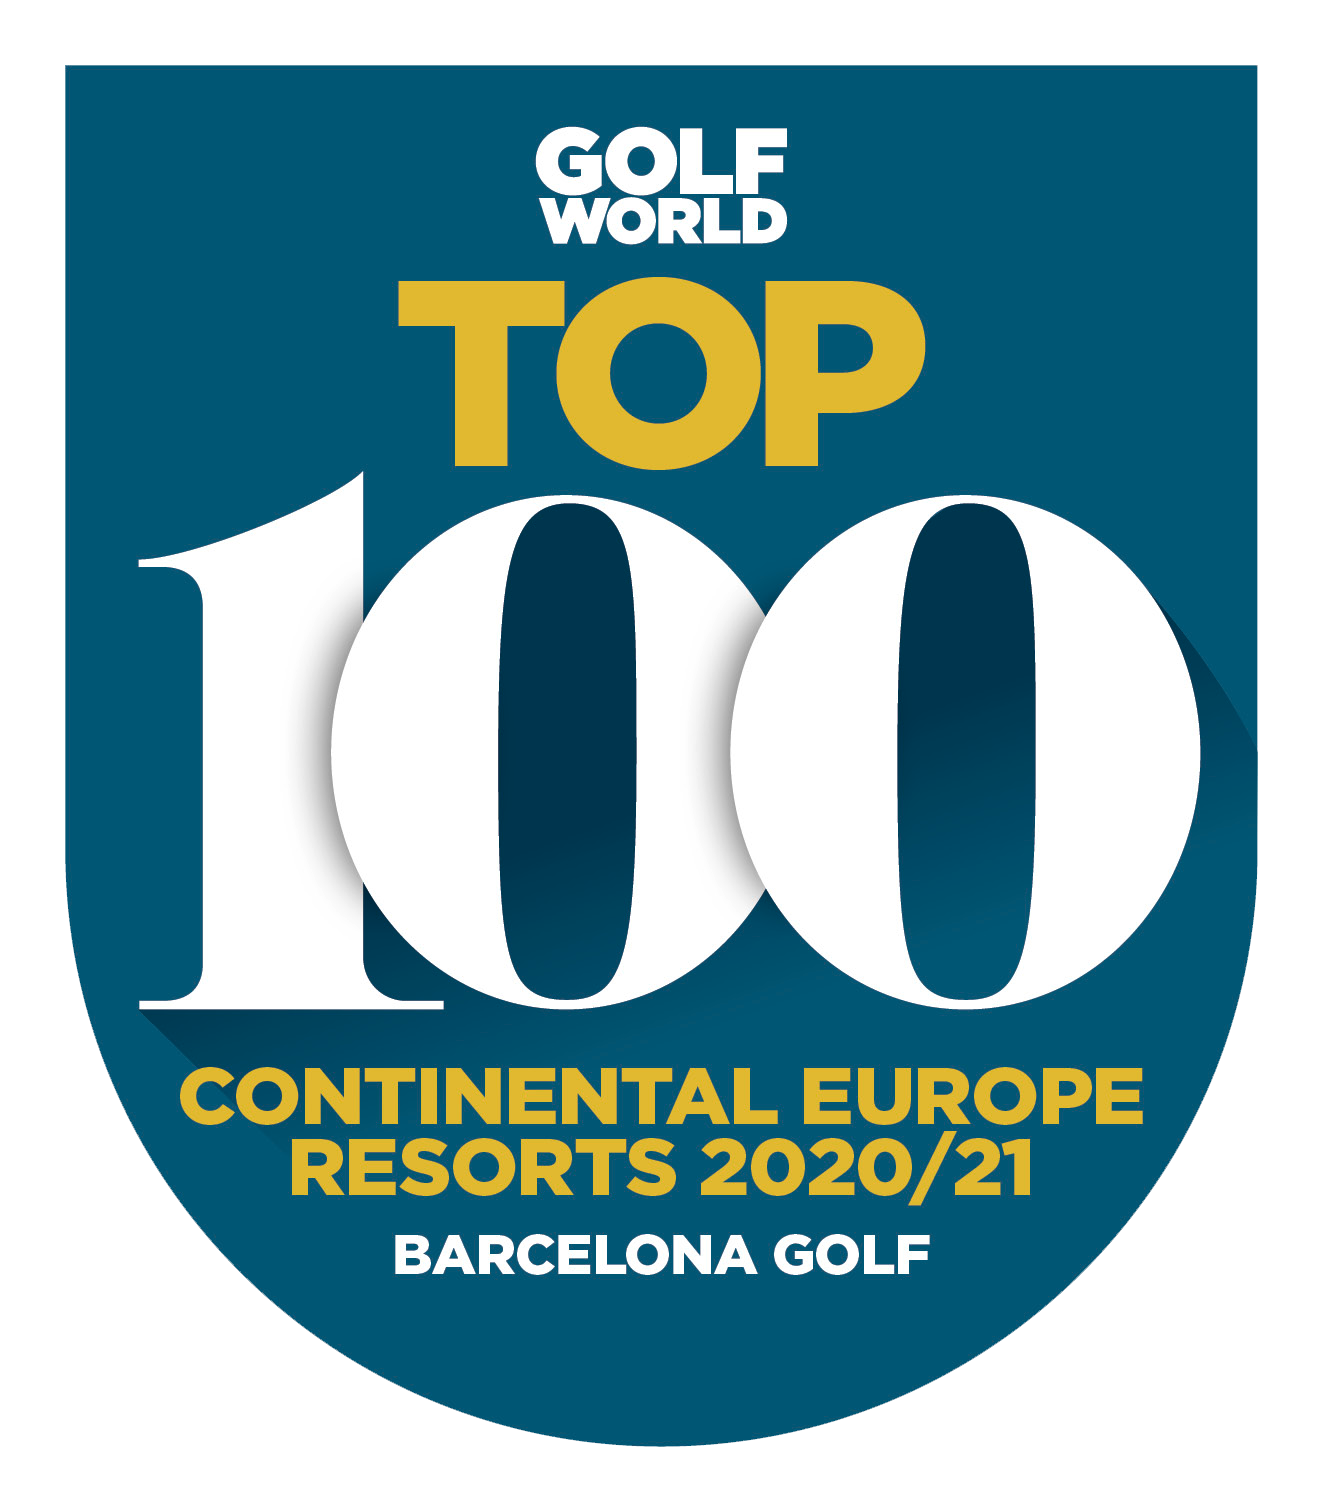 Golf World Top 100 Continental Europe Resorts 2020/21